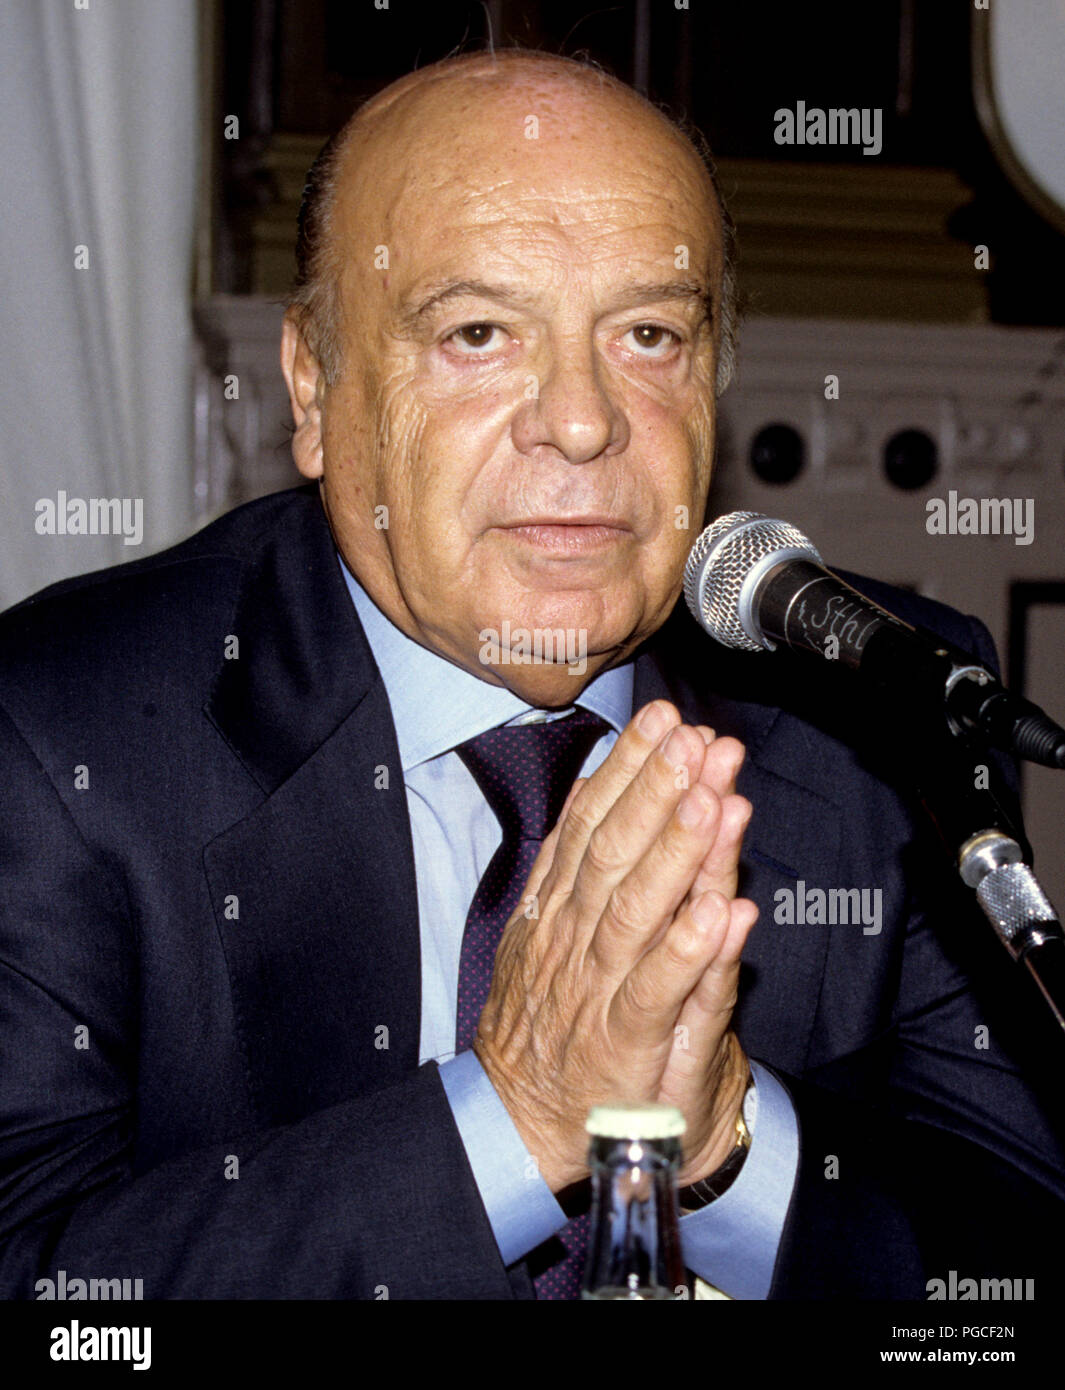 PRIMO NEBIOLO Italian sport official and president for IAAF the International Association of Athletics Federations - Stock Image